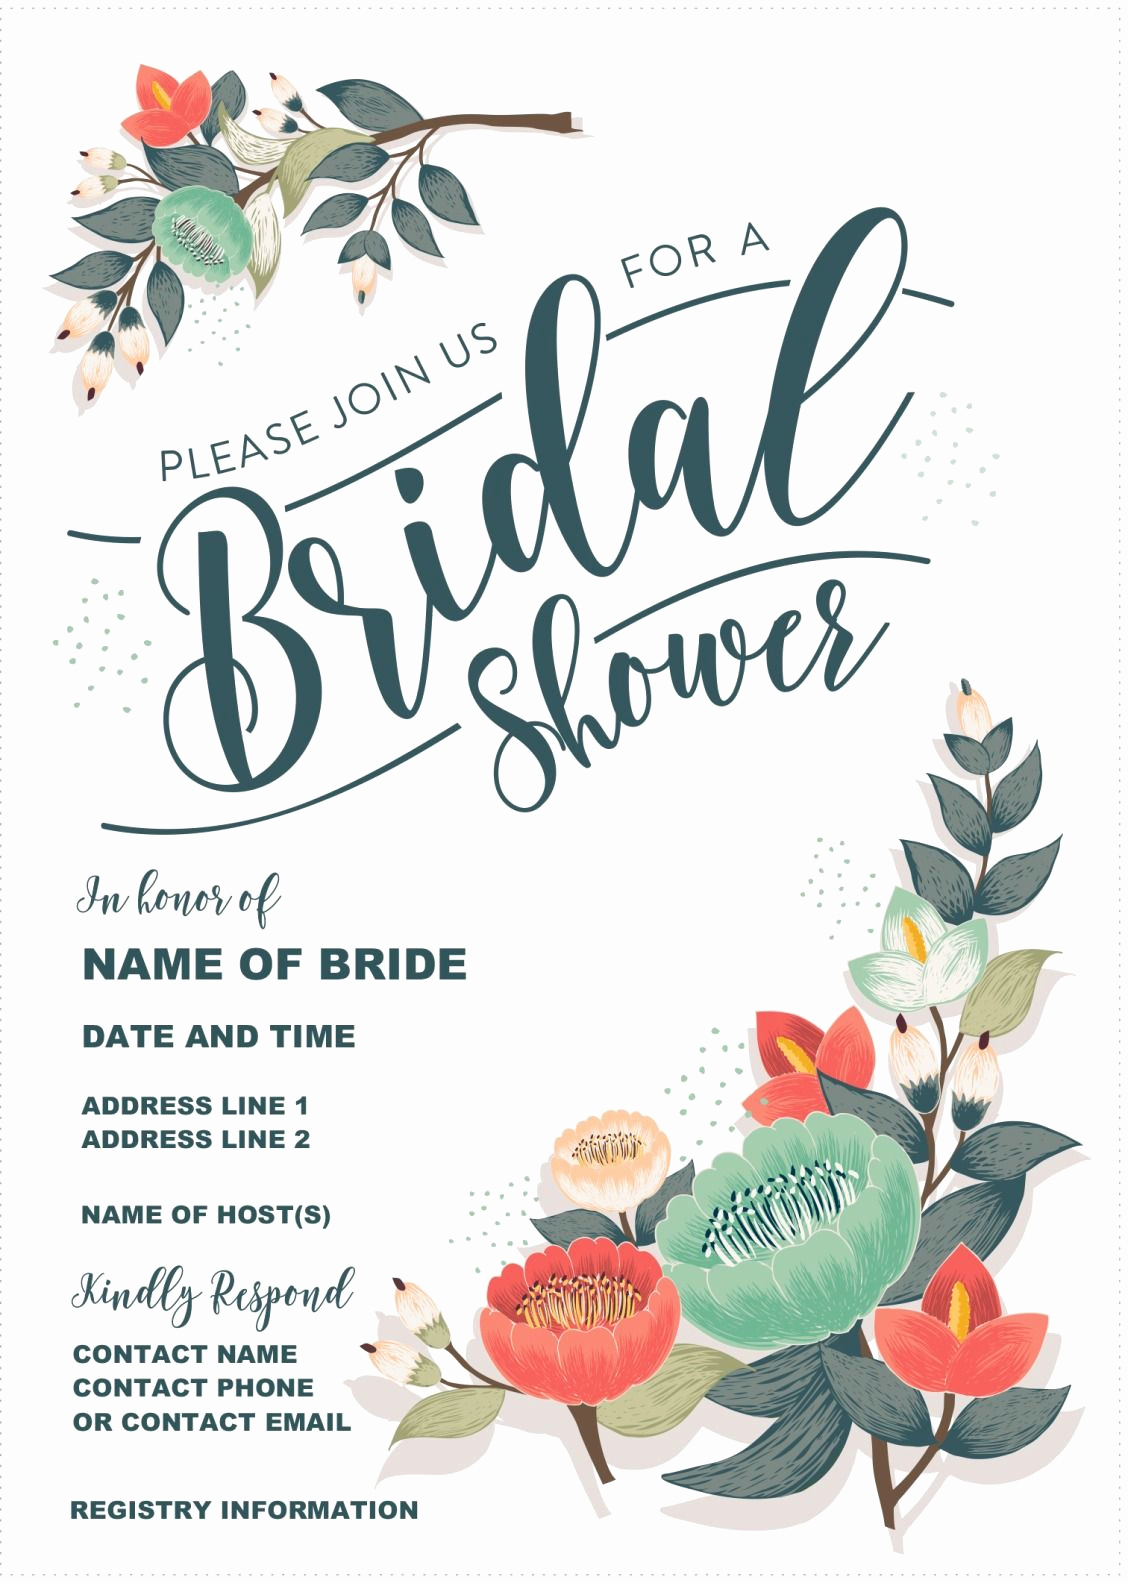 Bridal Shower Invitation Template Unique Our Gorgeous Printable Bridal Shower Invitation is totally